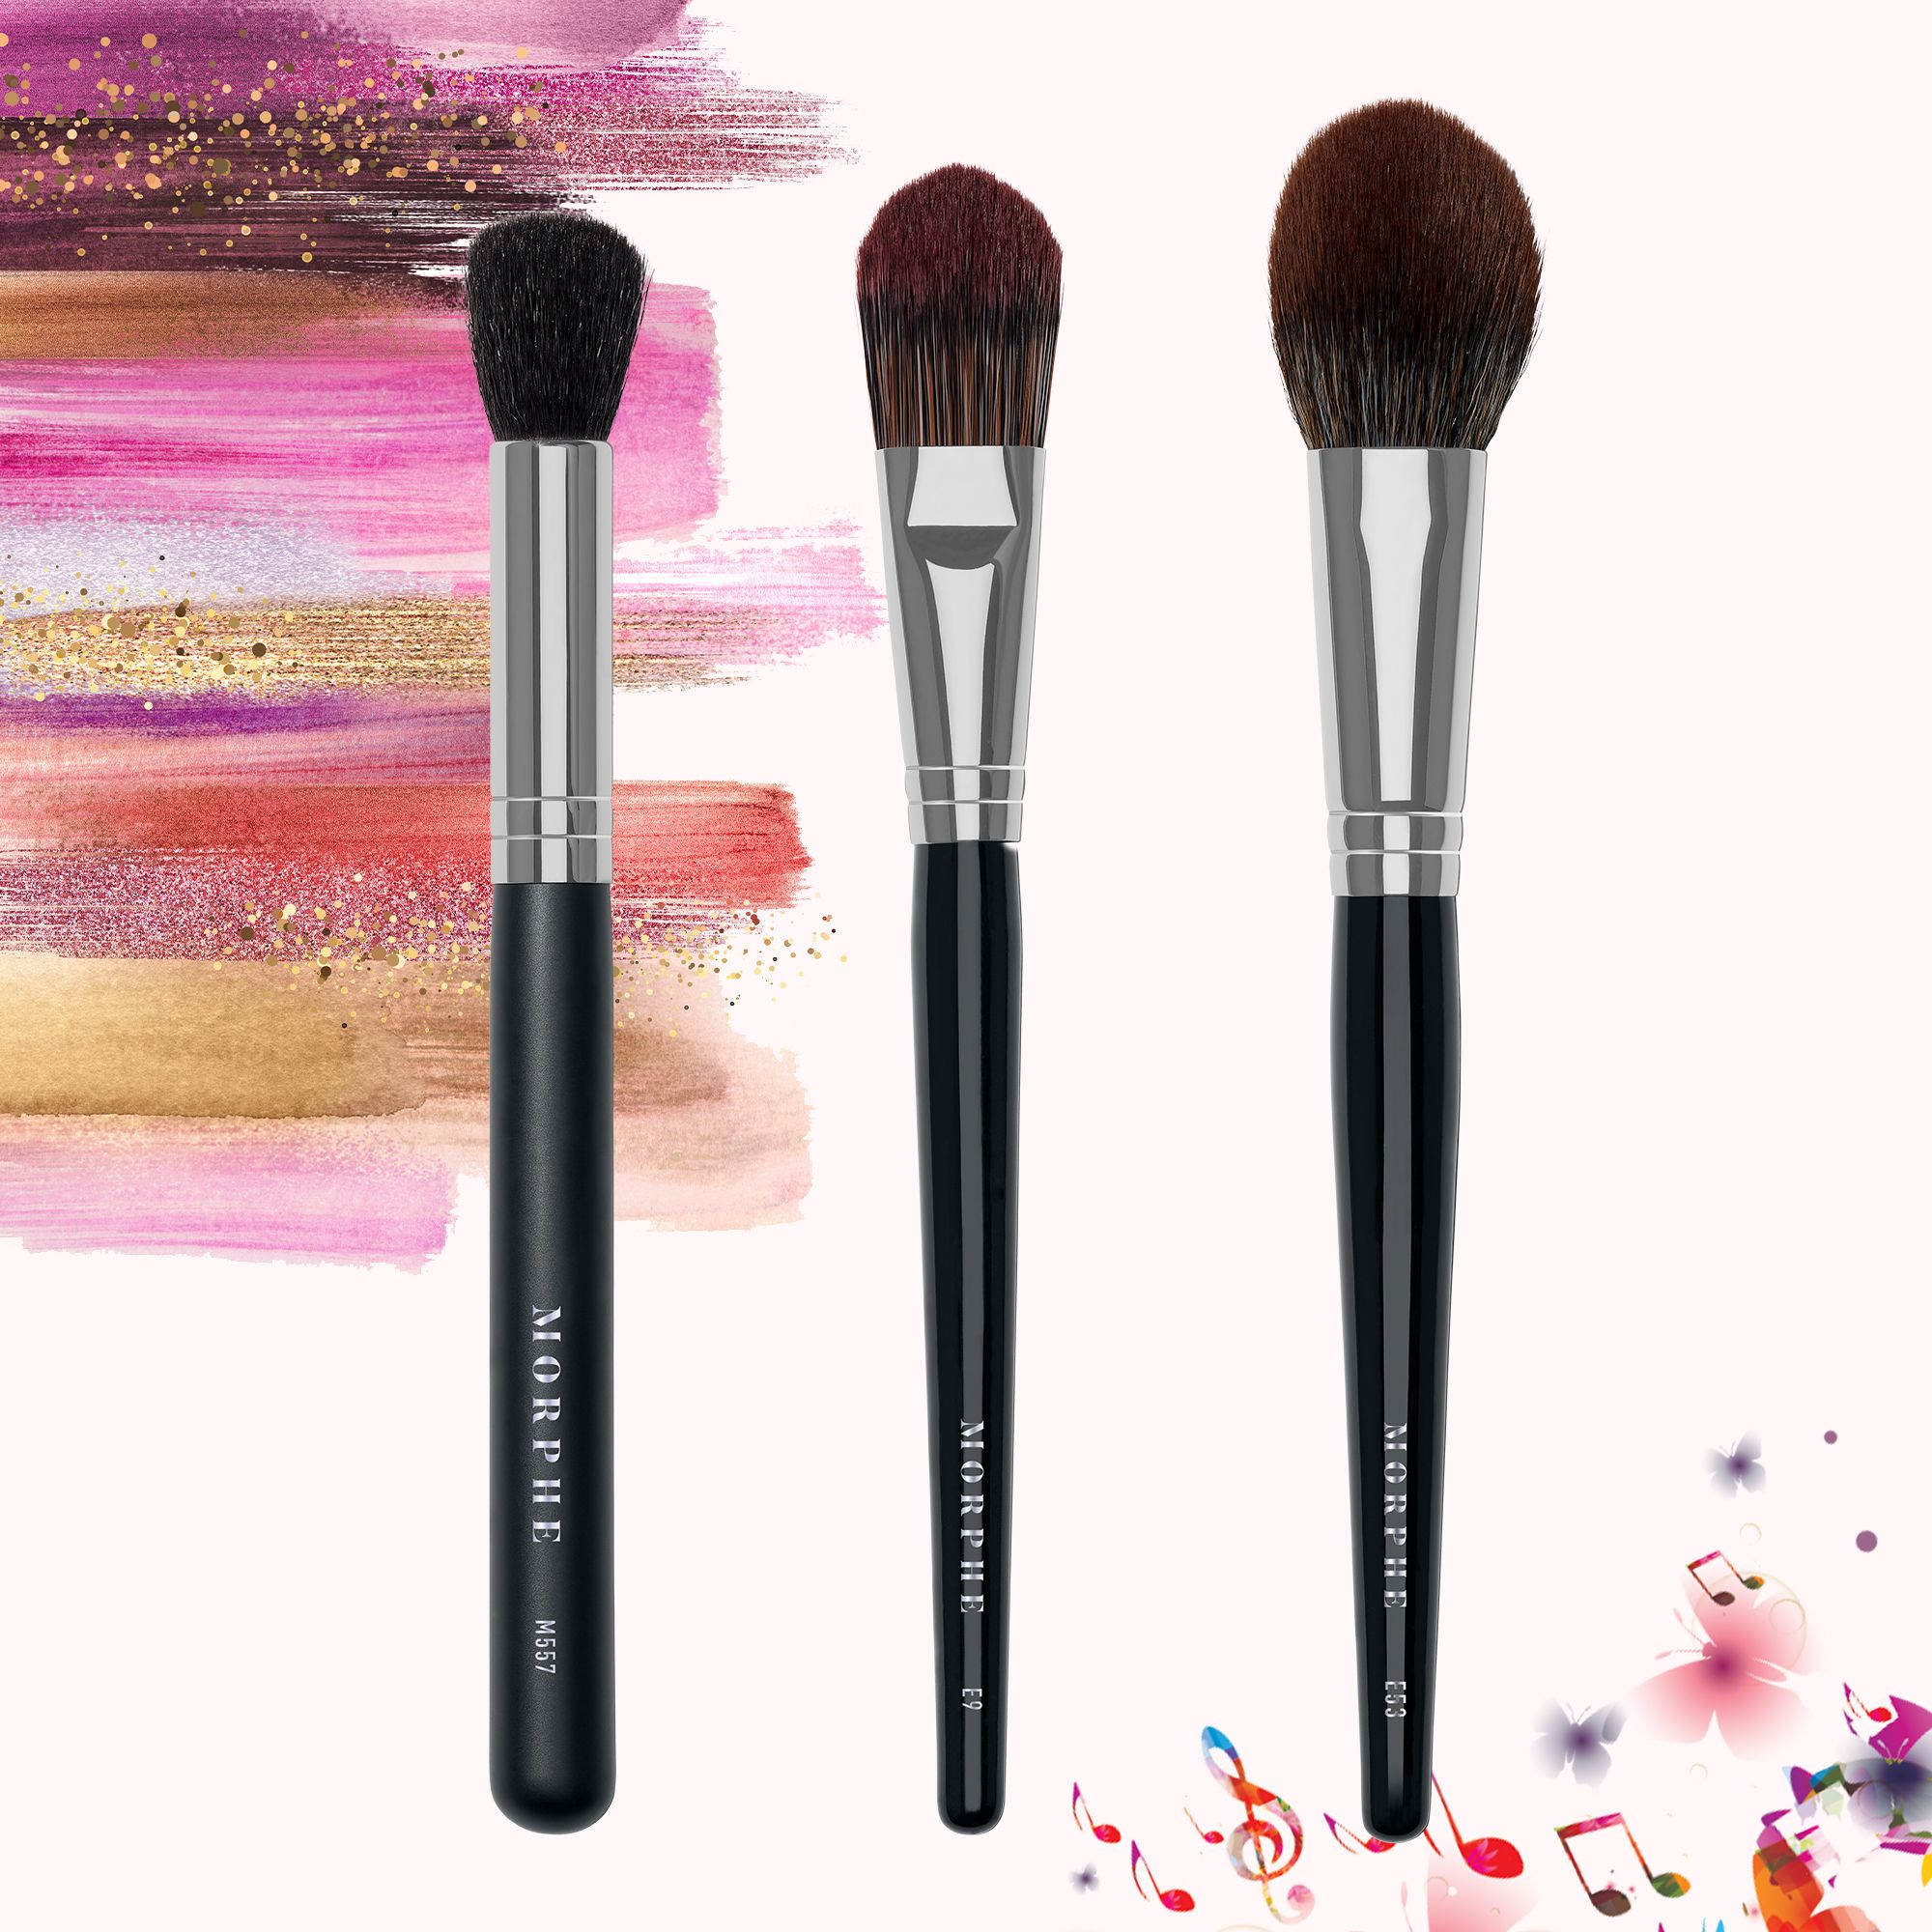 Morphe Makeup Brushes Oval foundation brush, Contour